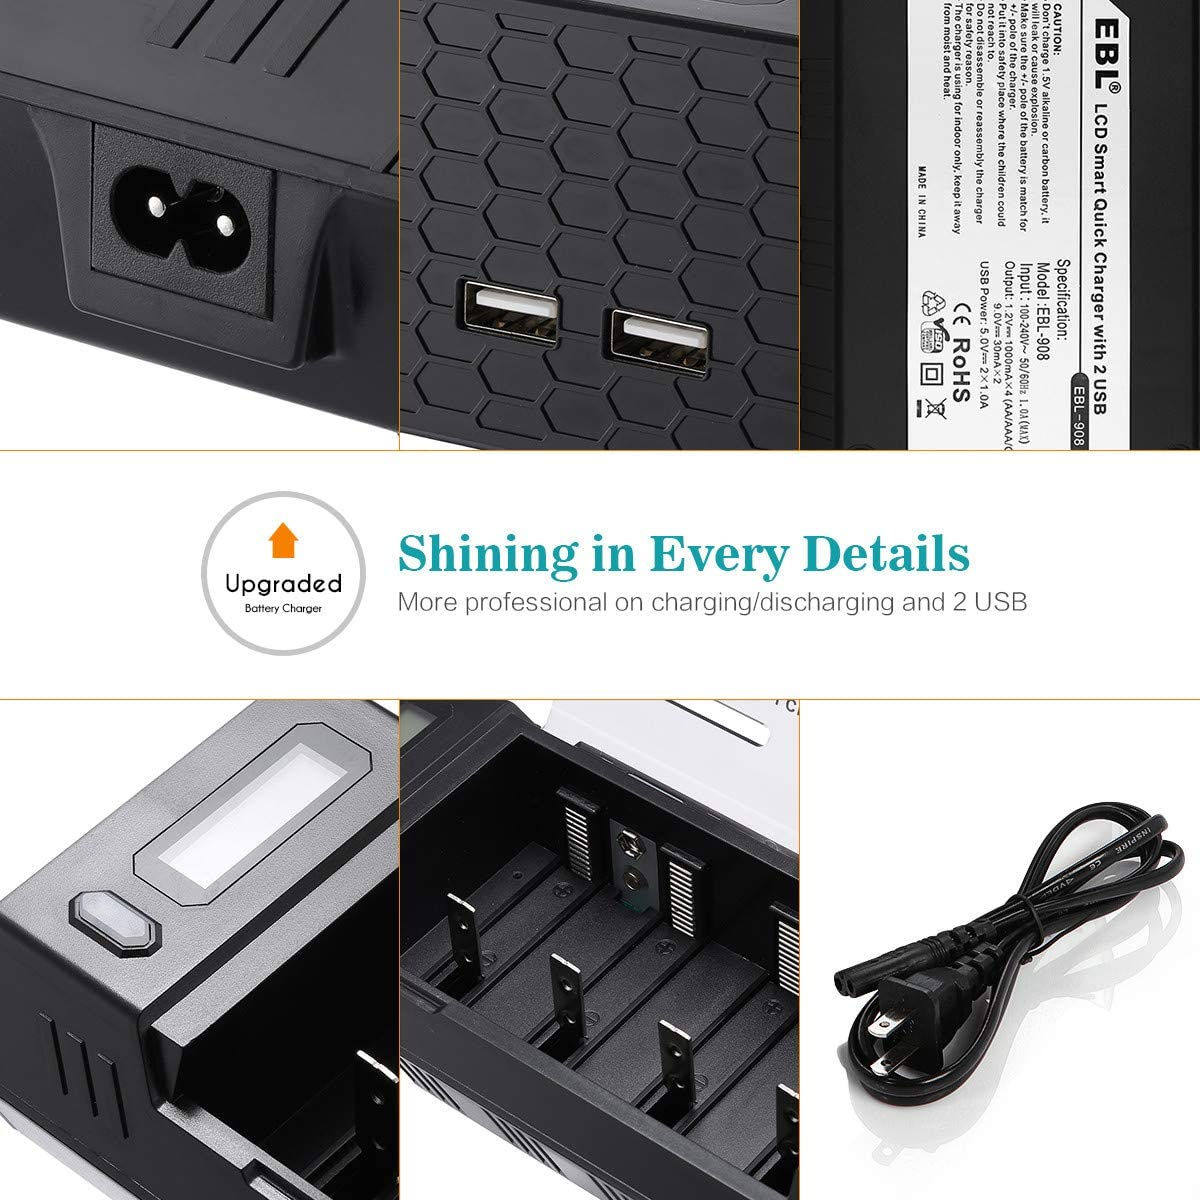 Ultra Fit AA AAA C D 9V NiMH Rechargeable Batteries EBL C D Battery Charger Discharger with LCD Display /& 2 USB Port